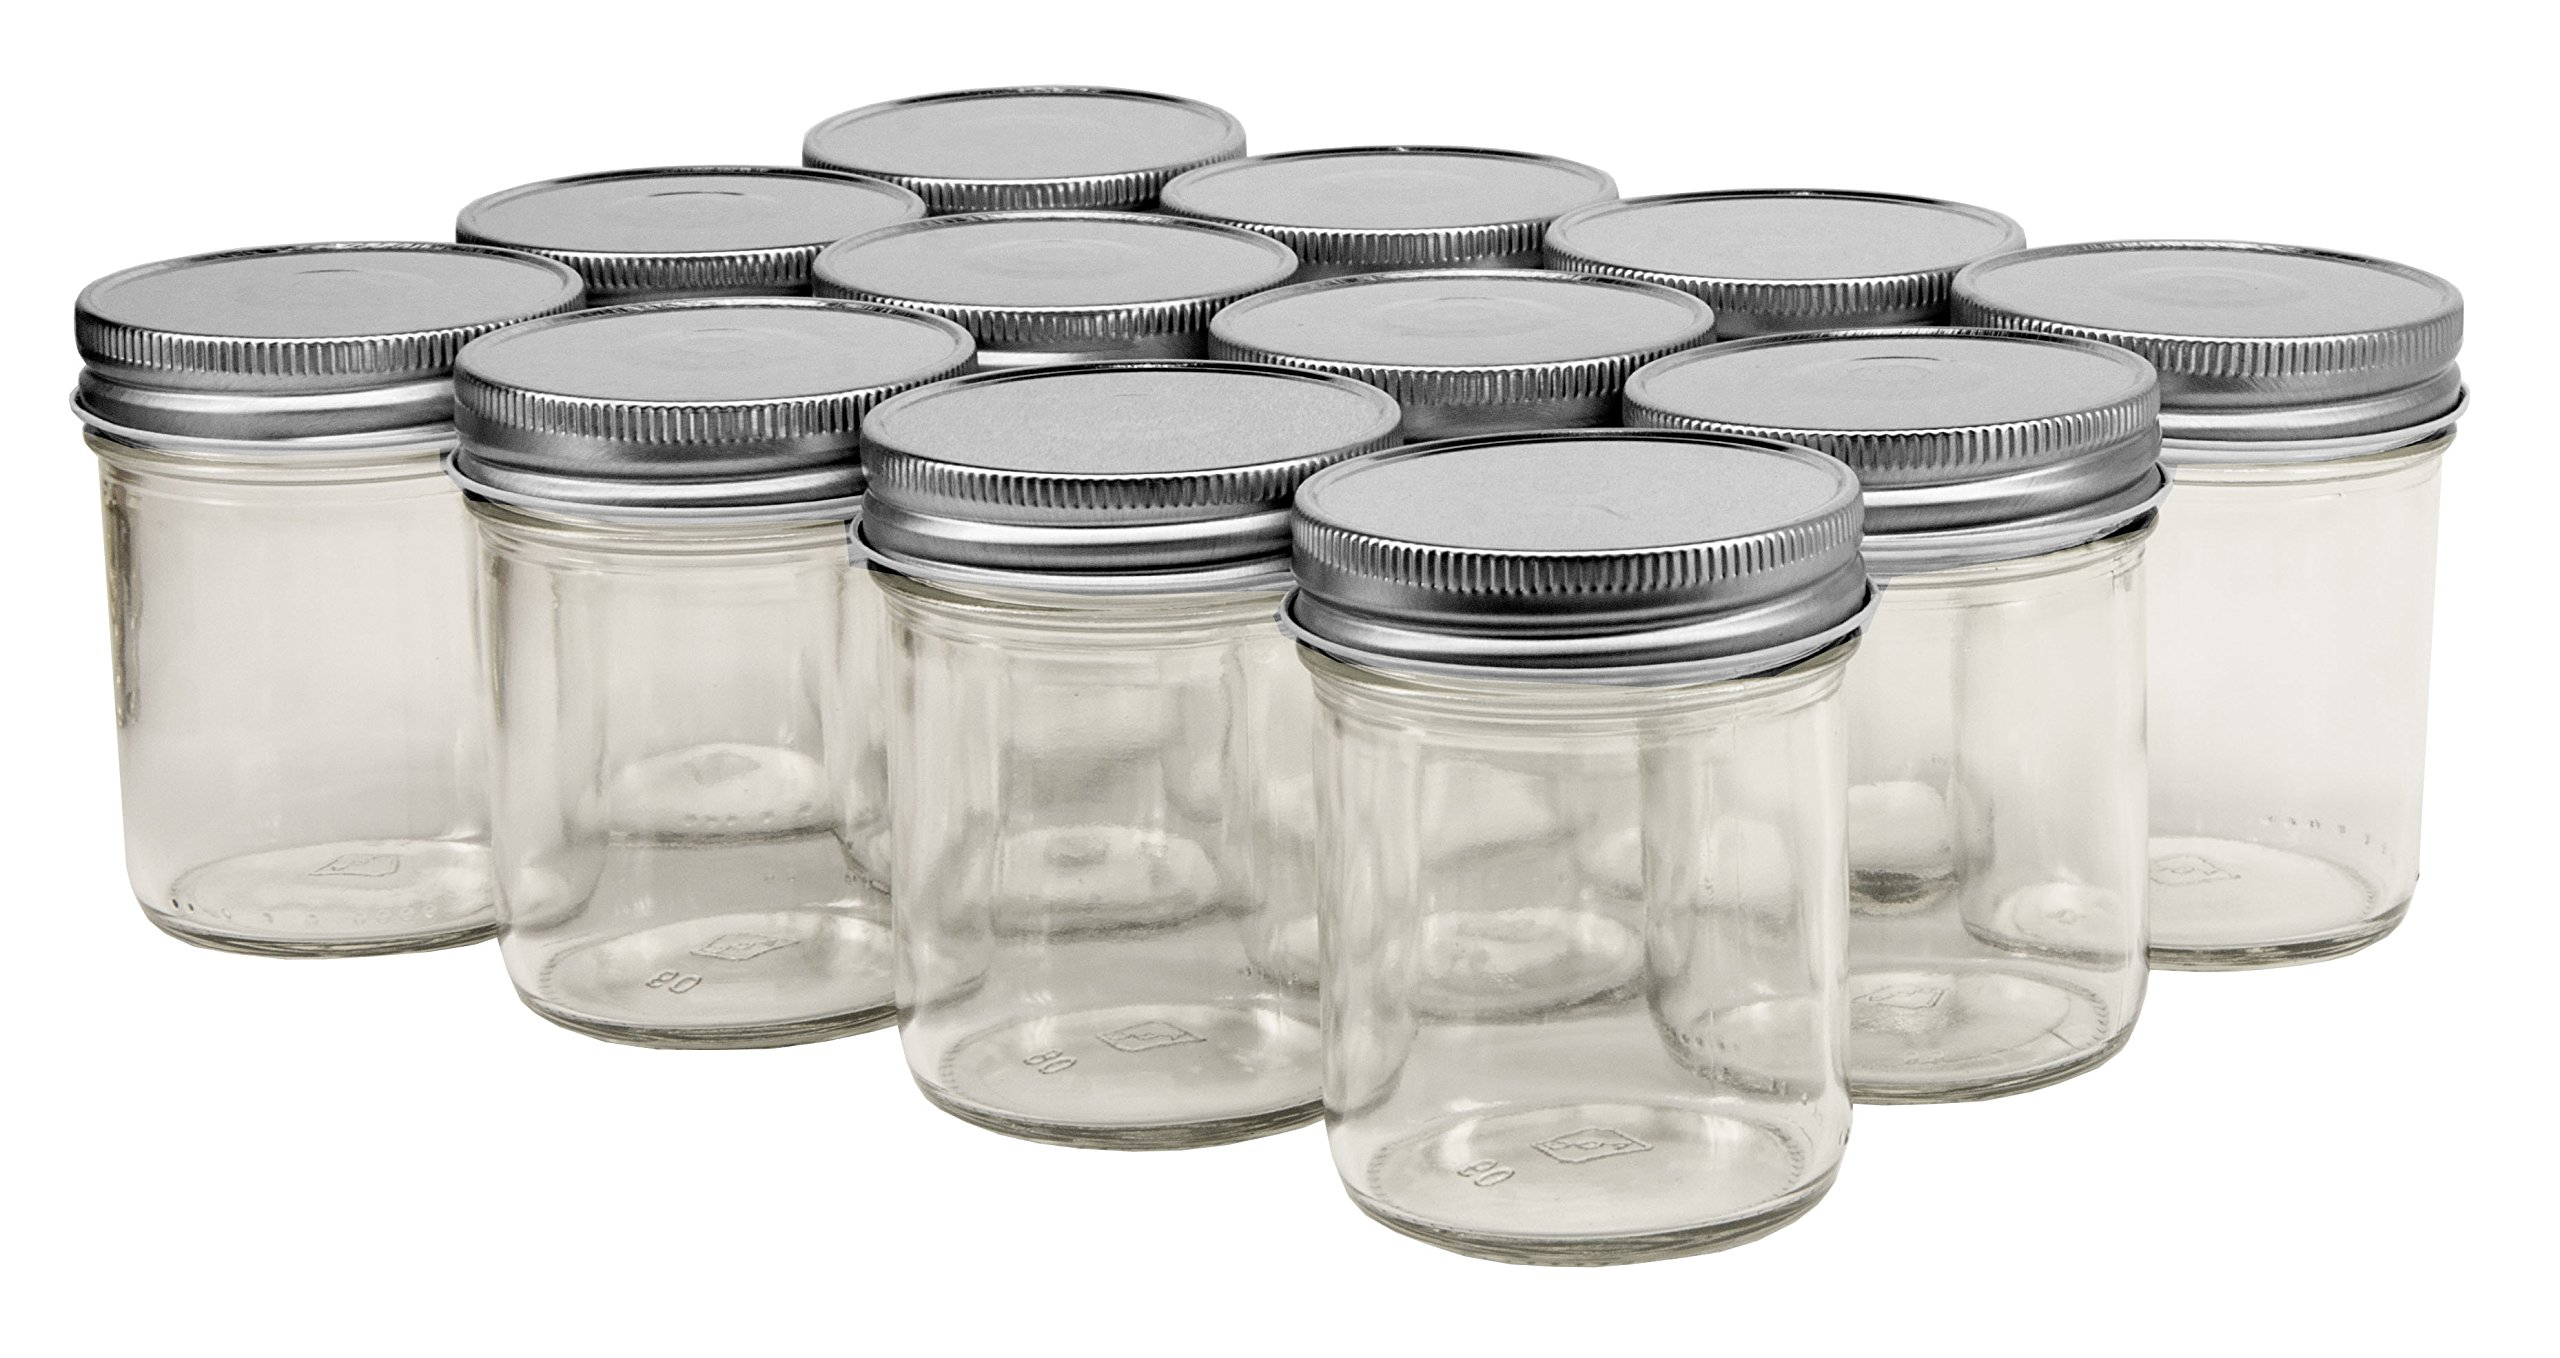 North Mountain Supply 8 Ounce Glass Straight Sided Regular Mouth Mason Canning Jars - With Silver Safety Button Lids - Case of 12